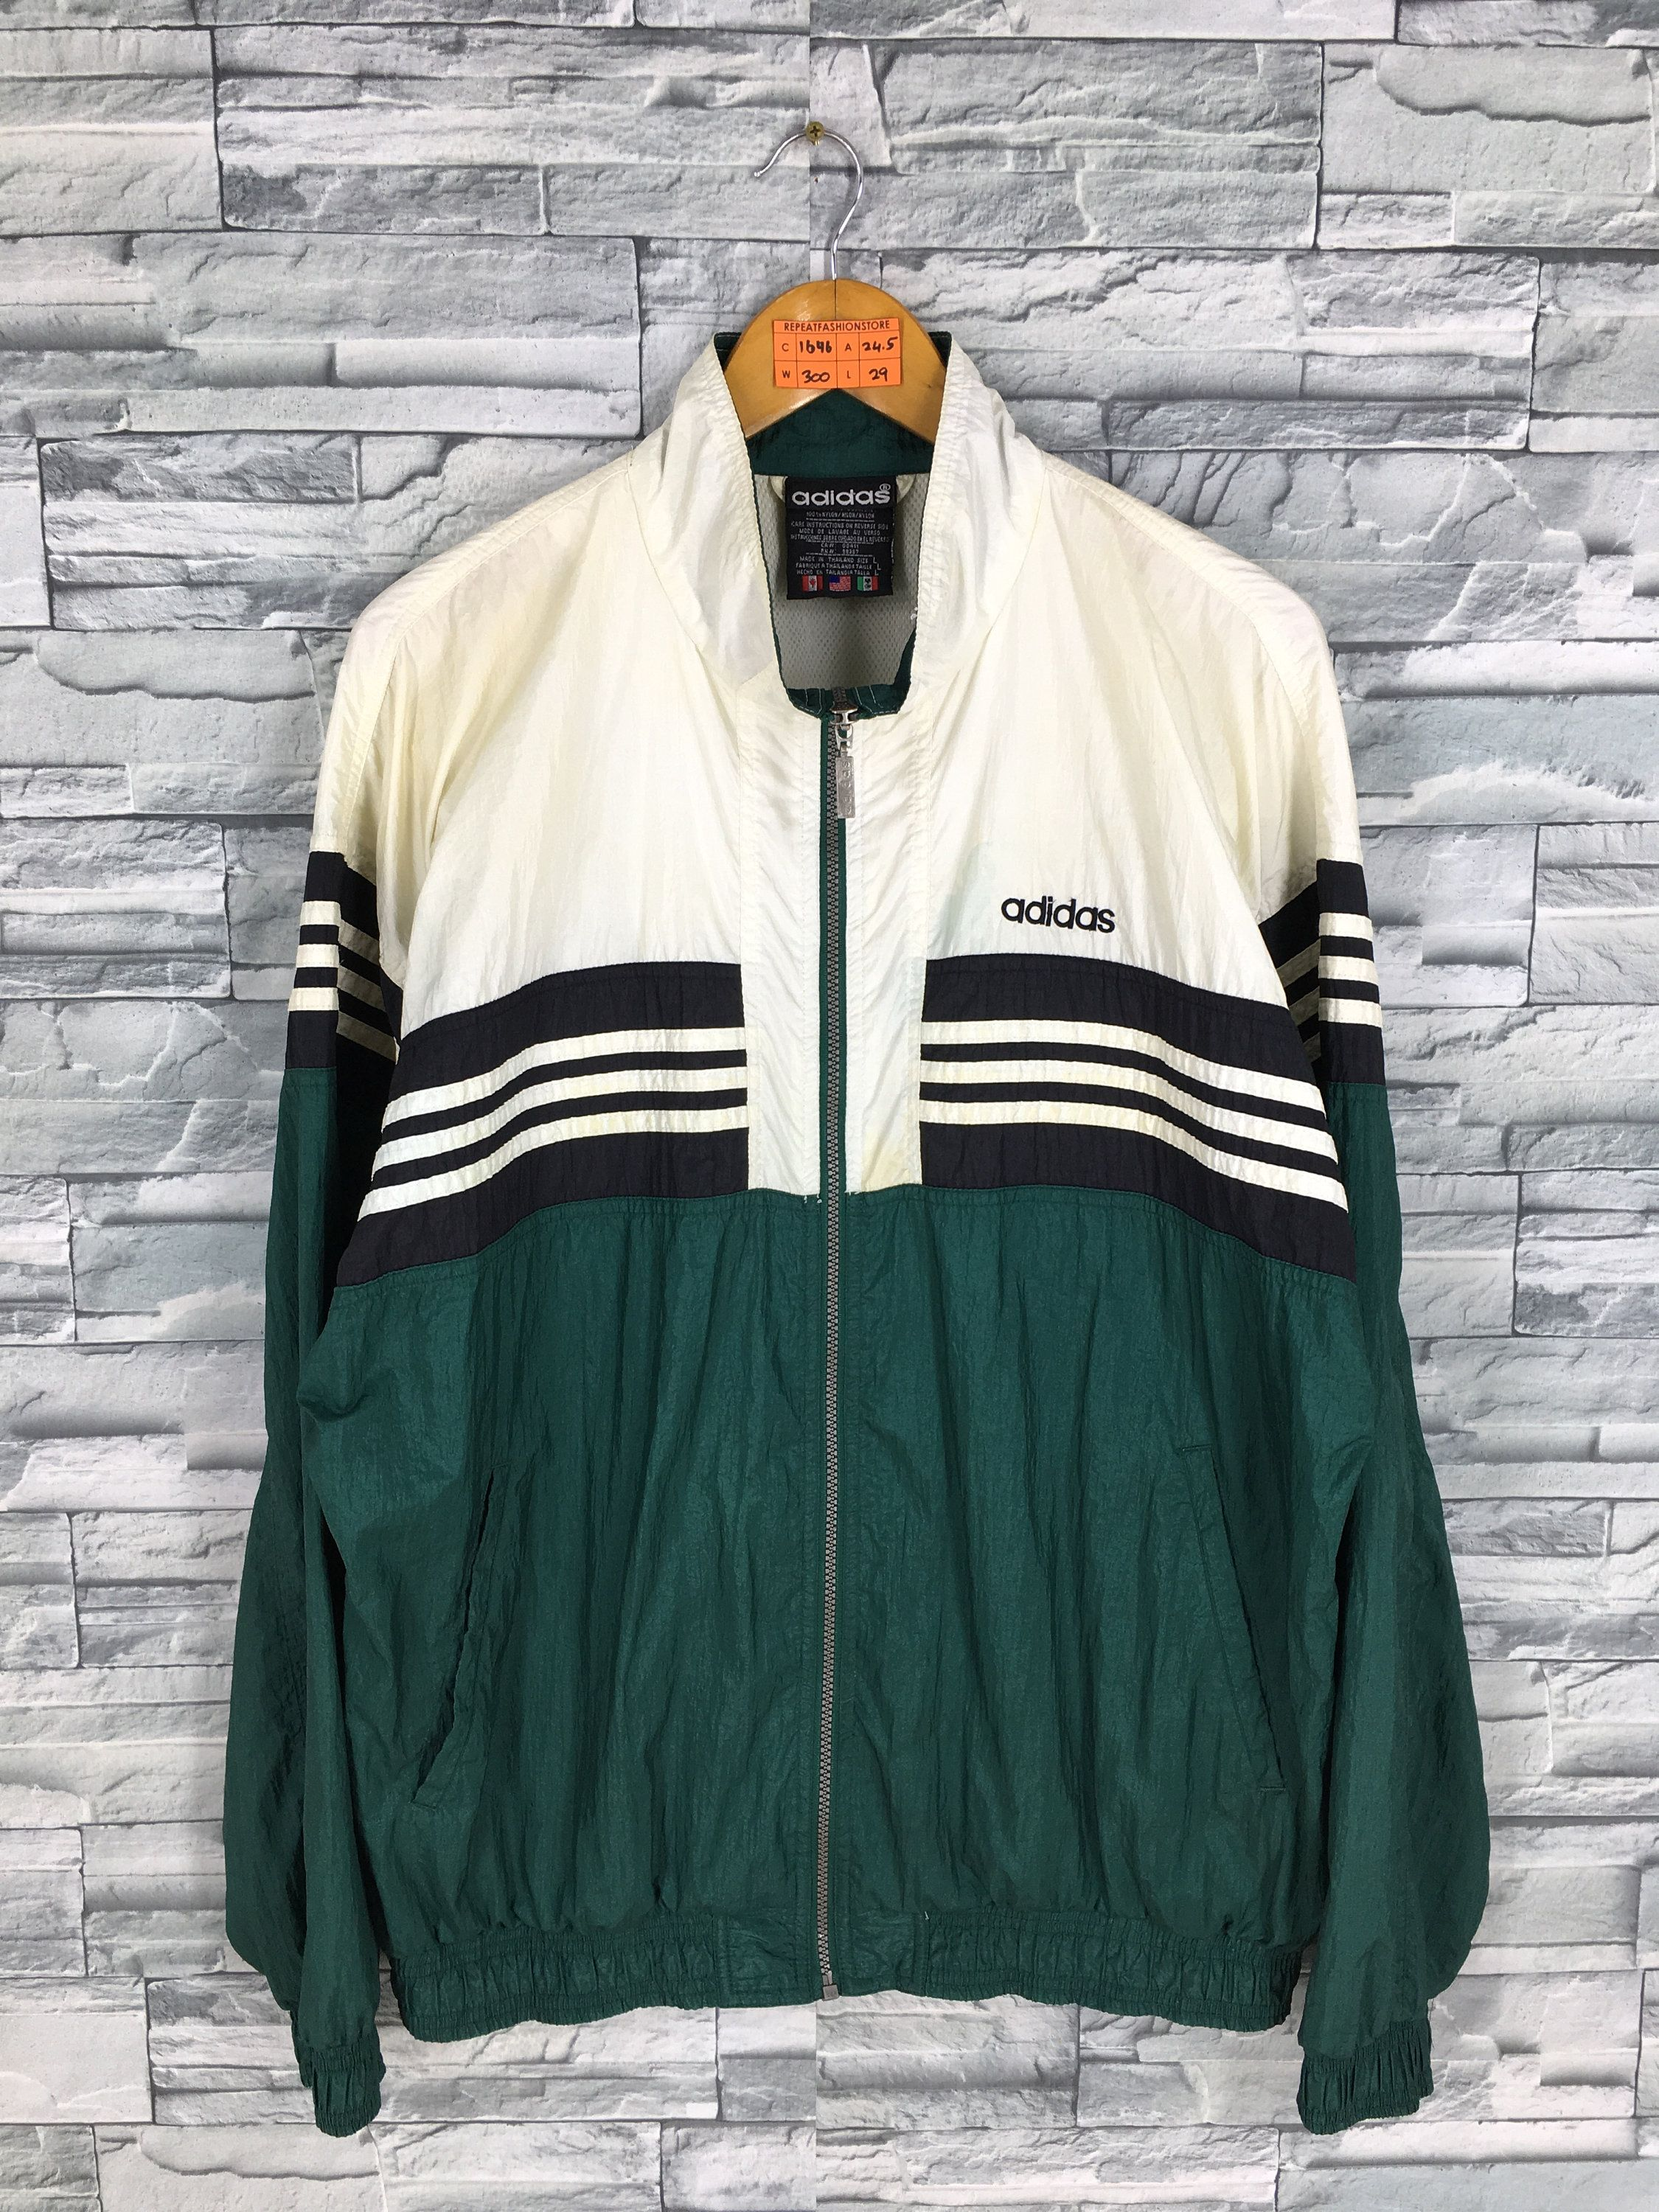 VTG 90S ADIDAS Windbreaker Zip Up Jacket Three Stripes